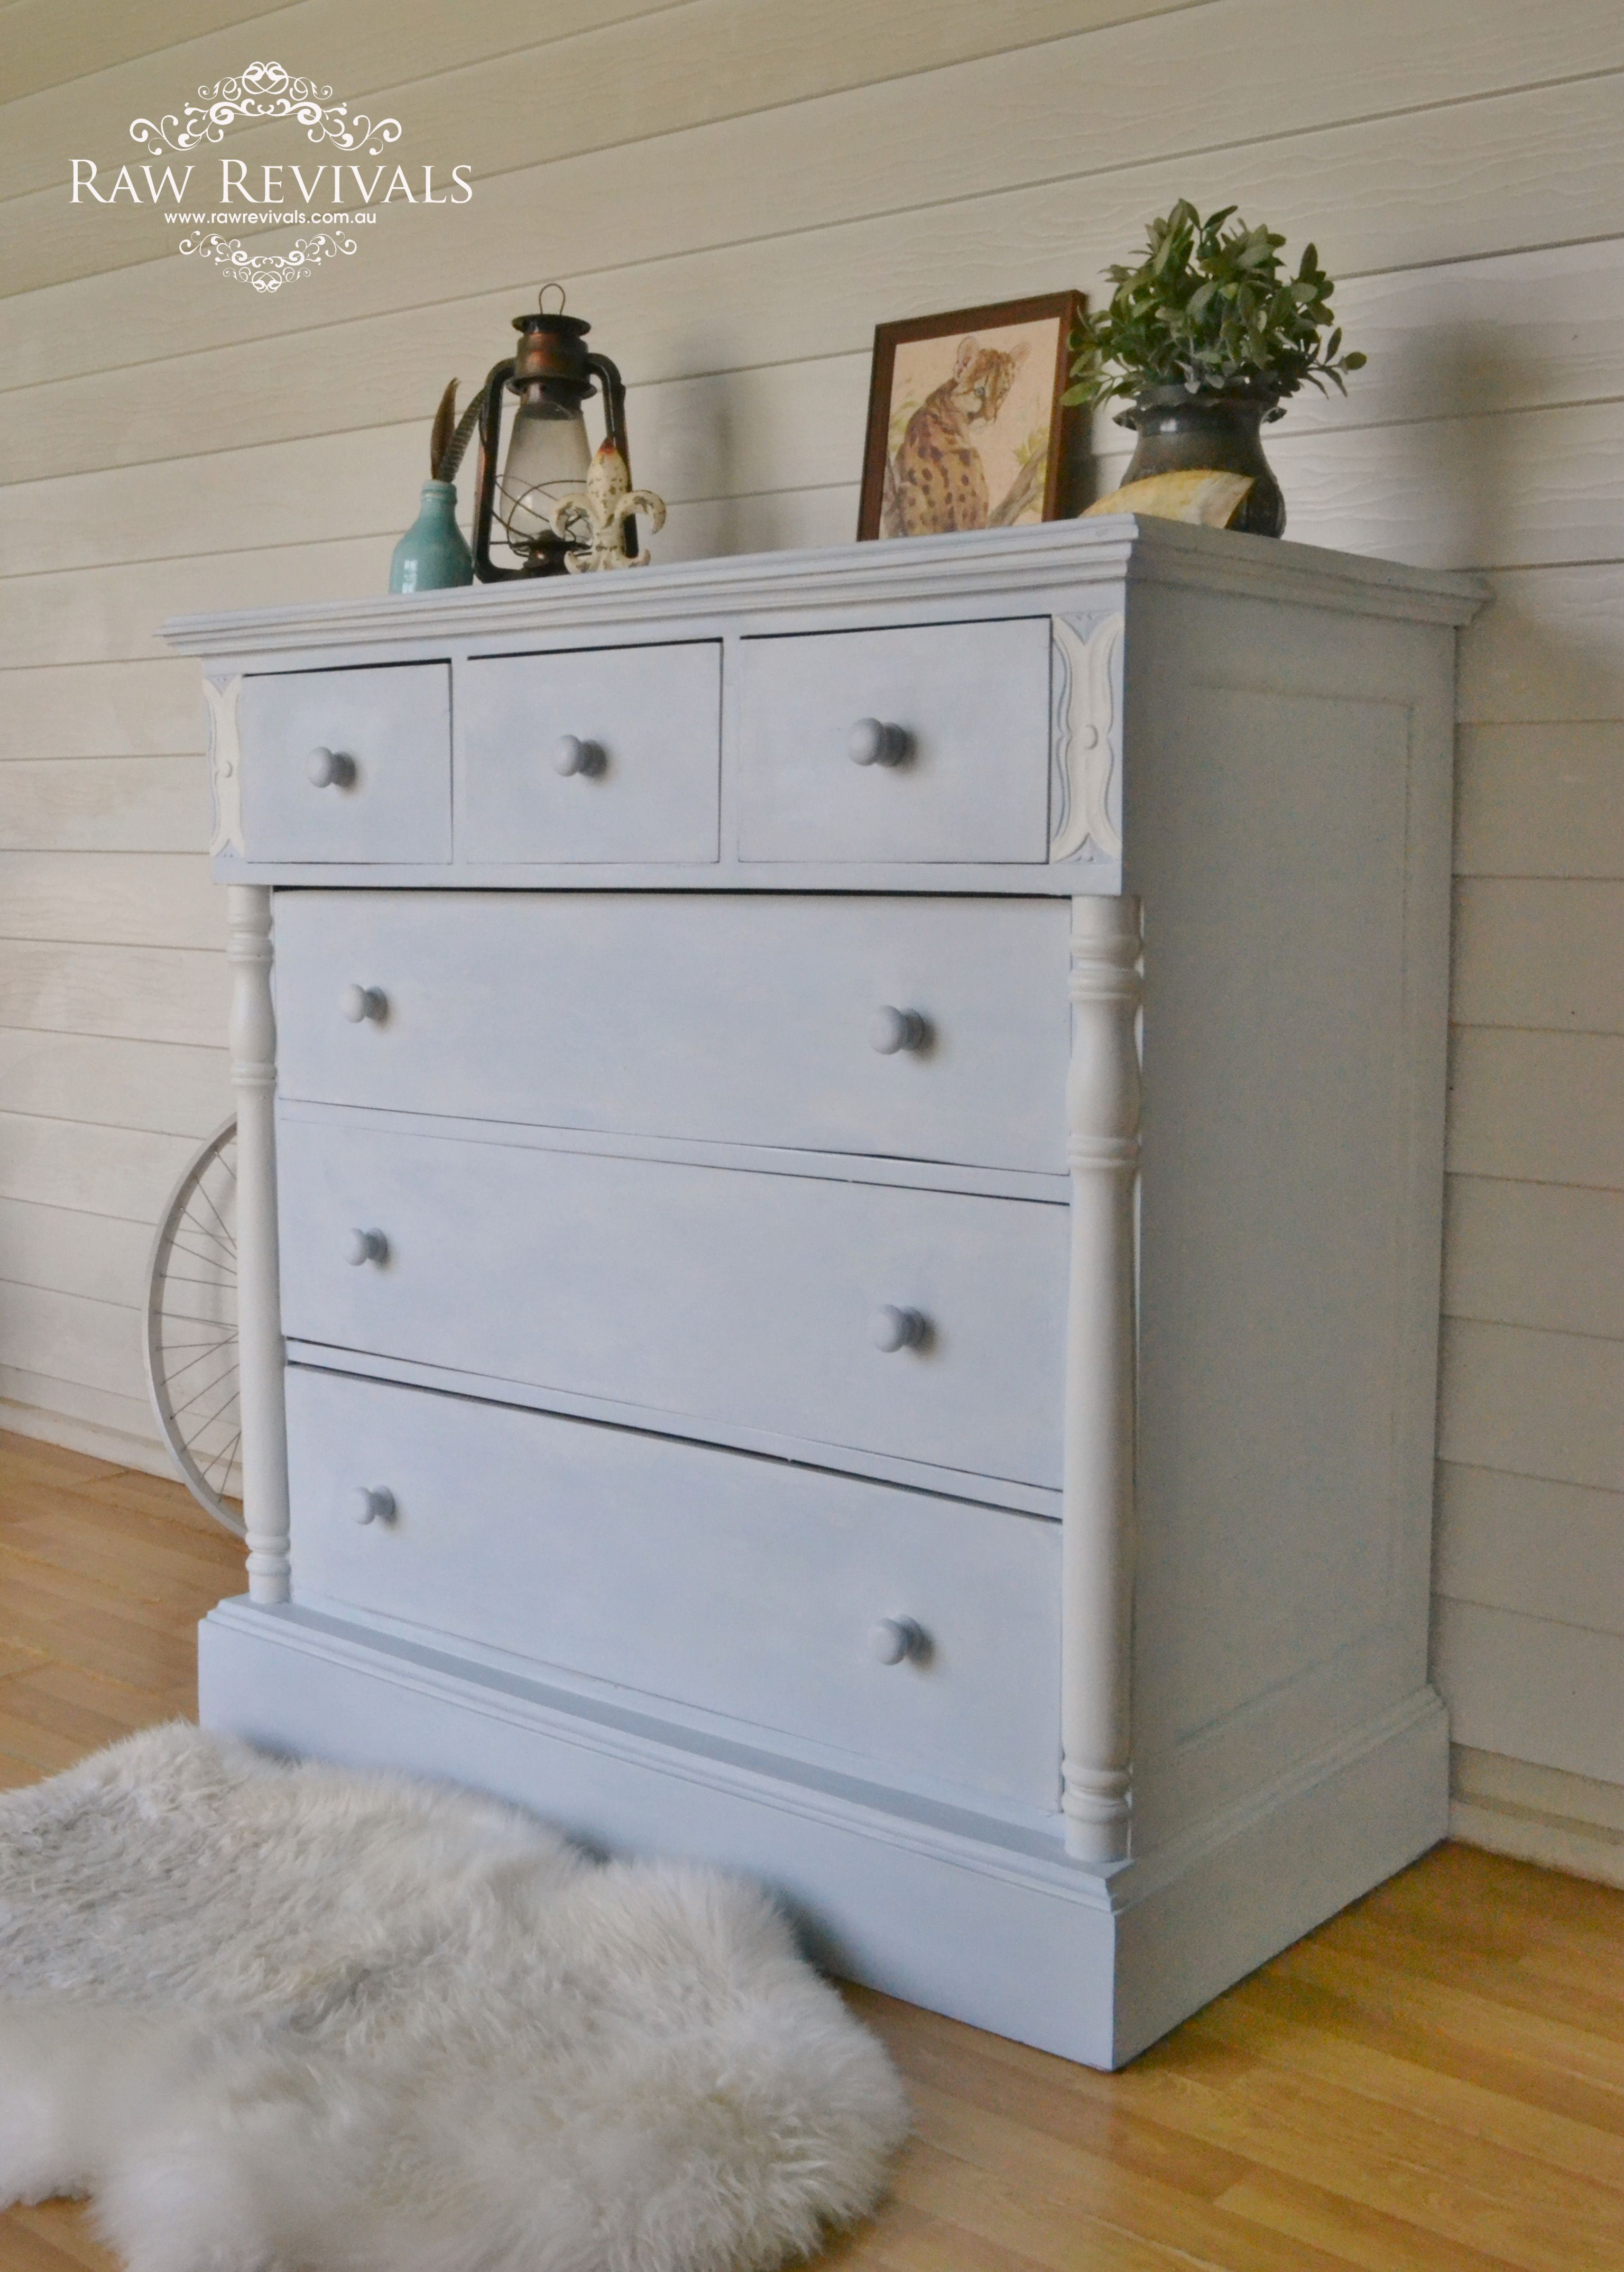 large wooden pdx essentials reviews drawers drawer chest household furniture wayfair of home